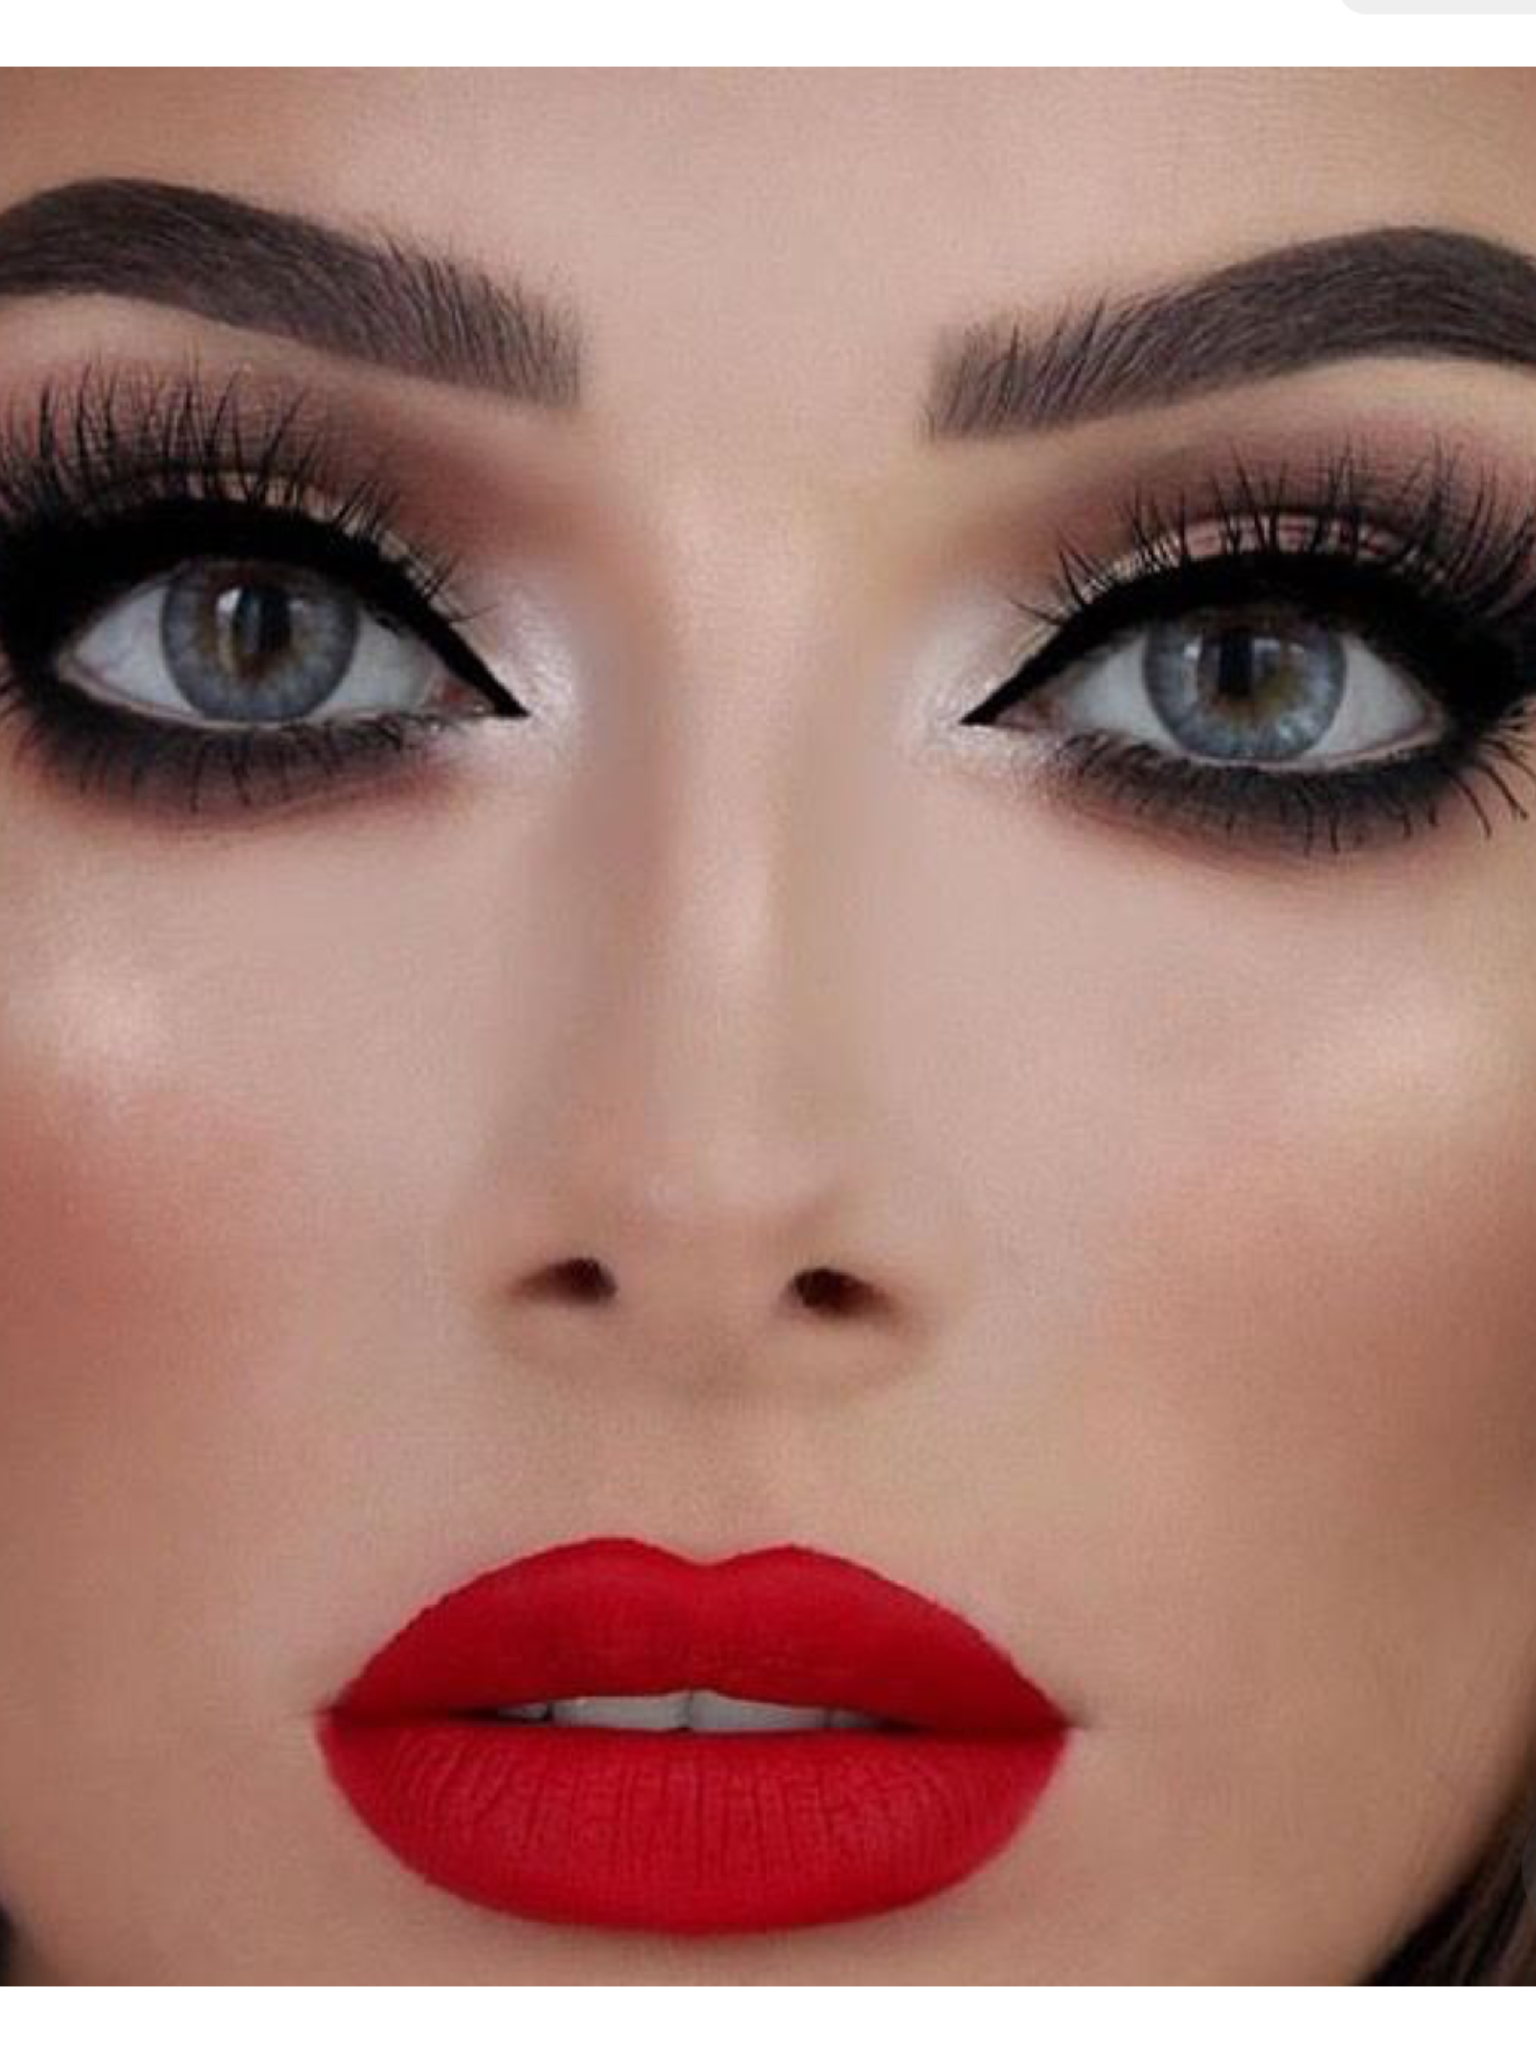 Pin By Jaecee Kamm On Makeup Beta 2 In 2019 Red Lipstick On Beautiful Makeup Photos 9938